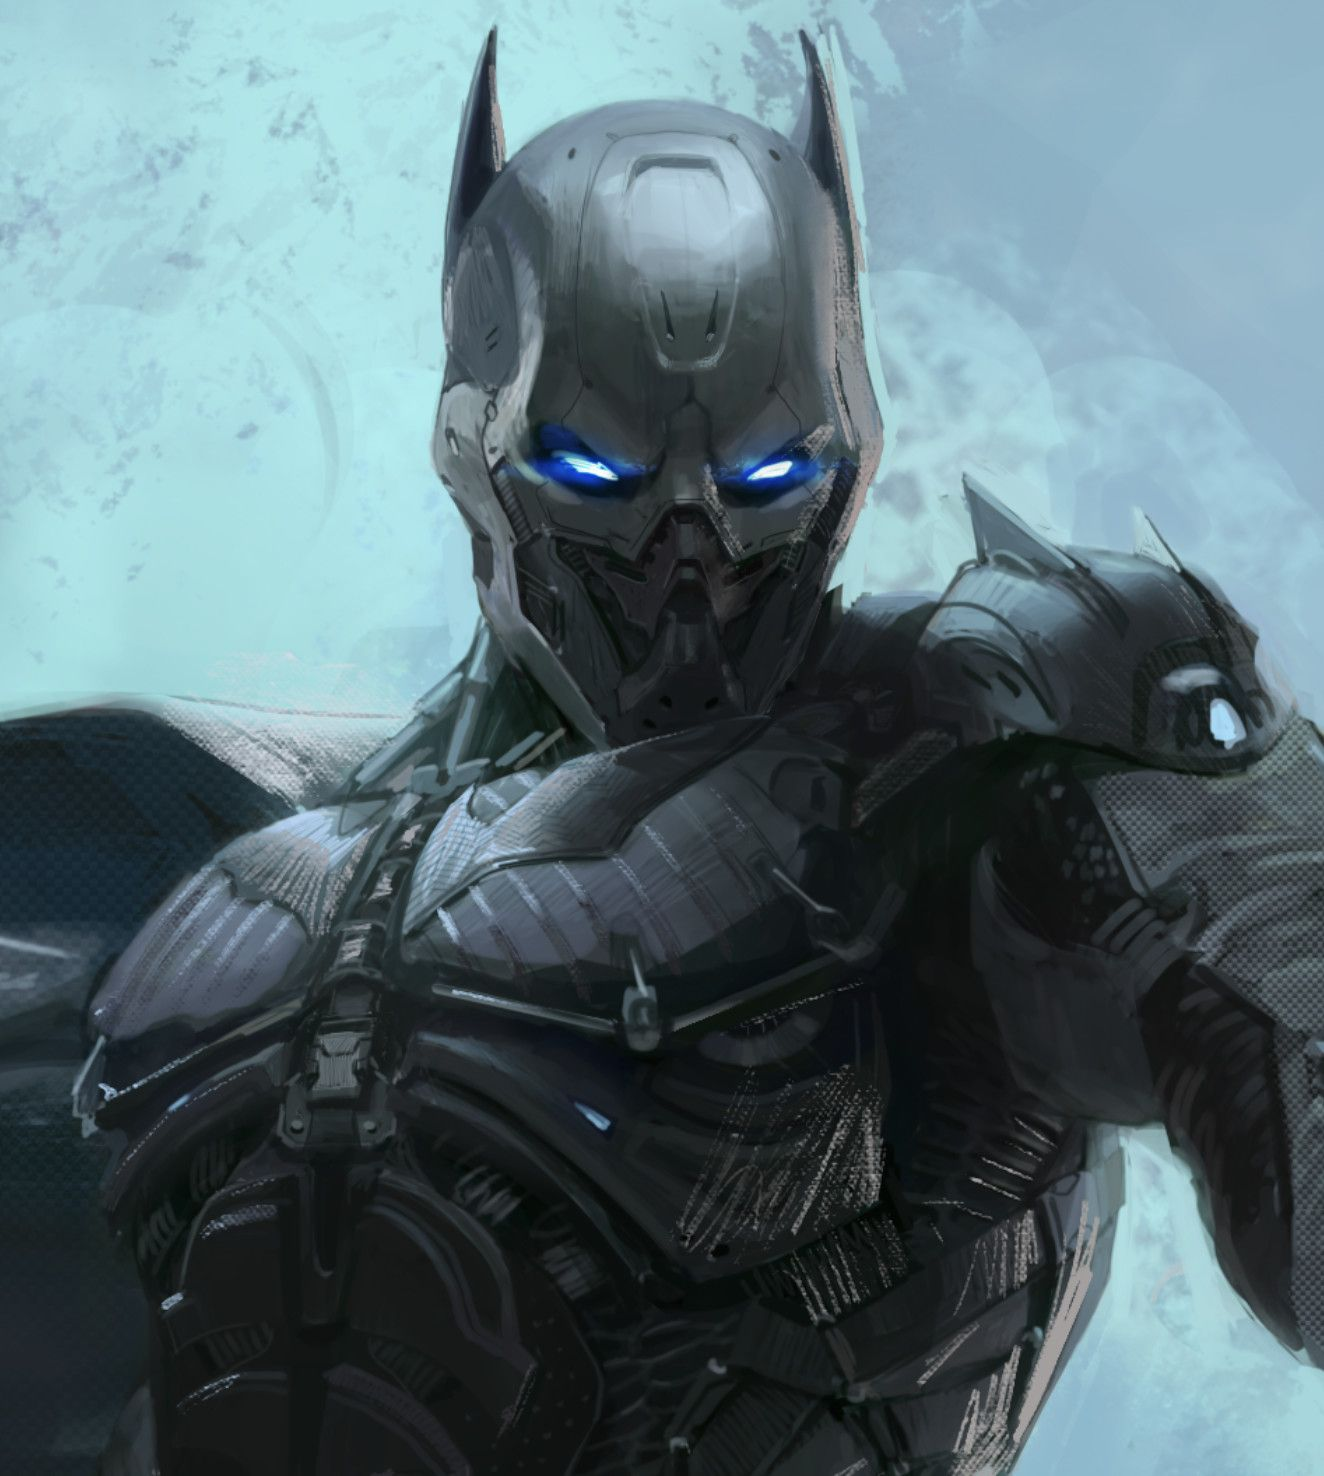 Batman redeign, Daeyoon Huh on ArtStation at https://www.artstation.com/artwork/DzR5e